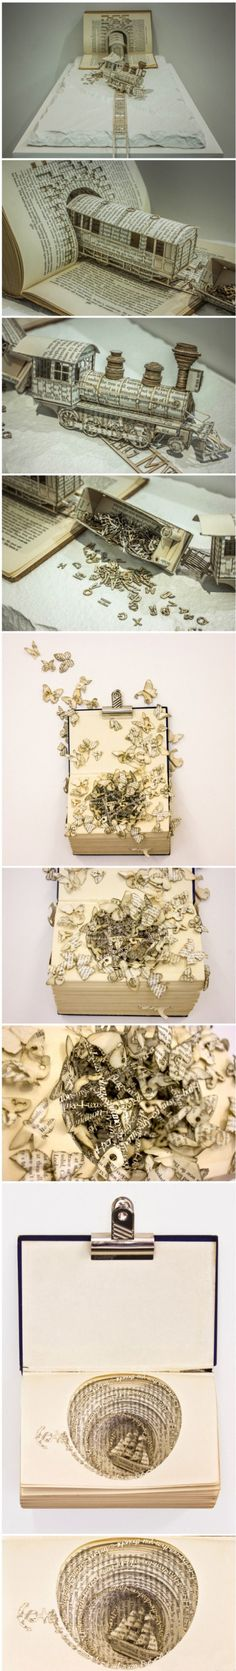 Amazing book sculpture by Thomas Wightman. Conveying the emotions of a panic attack using the metaphor of a sinking ship.